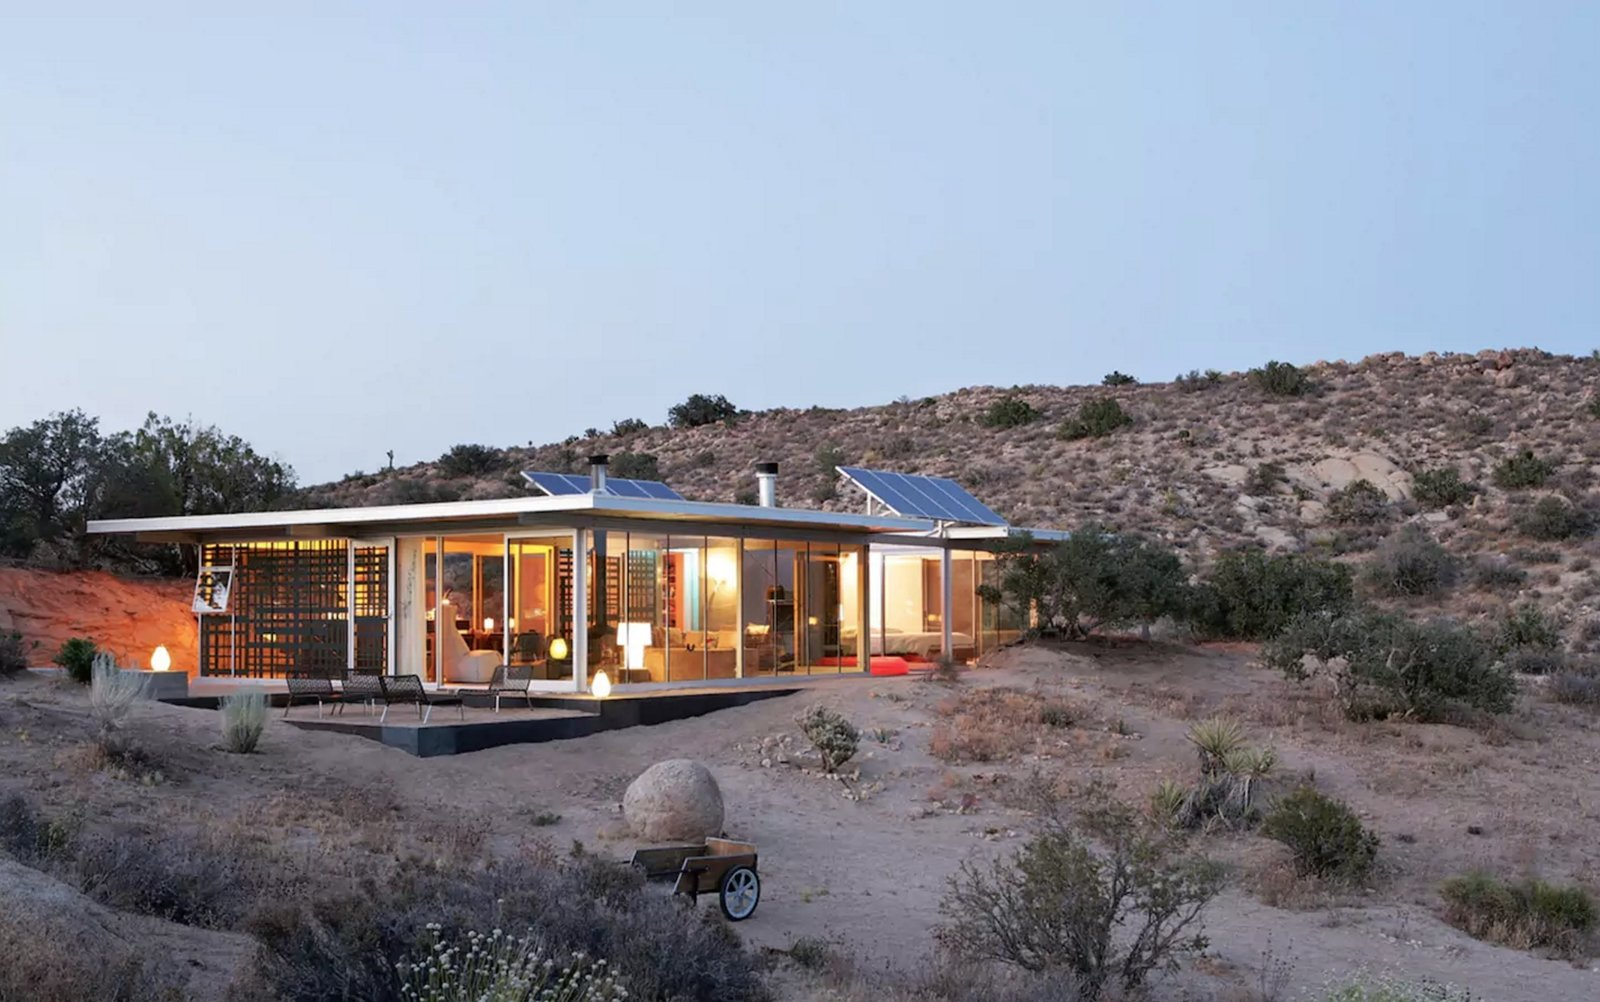 Off-grid itHouse Pioneertown, CA, United States  The Off-grid itHouse is an architecturally significant house, recently noted by Dwell as one of the 'Best Homes in America' and in the Los Angeles Times as one of the best houses of all time in Southern California. The Off-grid itHouse is one of 10 IT Houses built in California, which have received much acclaim such as the Western Home award sponsored by Sunset magazine. Also noted as one of the top 10 airbnb rentals worldwide. This is the prototype for the pre-engineered system known as the IT House.  The house is 100% off-grid, powered by solar panels for energy and hot water, and is located in a pristine remote valley in the beautiful California high desert. The house observes key green principals of smaller footprint, minimal disturbance to the natural beauty of the surrounding landscape, use of renewable resources, and living simply and minimally.  The setting of the house is remote and serene, a quiet refuge from everything, free from distractions. Amazing views and vistas in all directions.  Perfect for design or green aficionados, writers or those needing a secluded quiet getaway.  https://www.airbnb.com/rooms/19606 Tagged: Exterior, House, and Glass Siding Material.  Modern, Off-the-Grid Homes by Aileen Kwun from Great Airbnbs